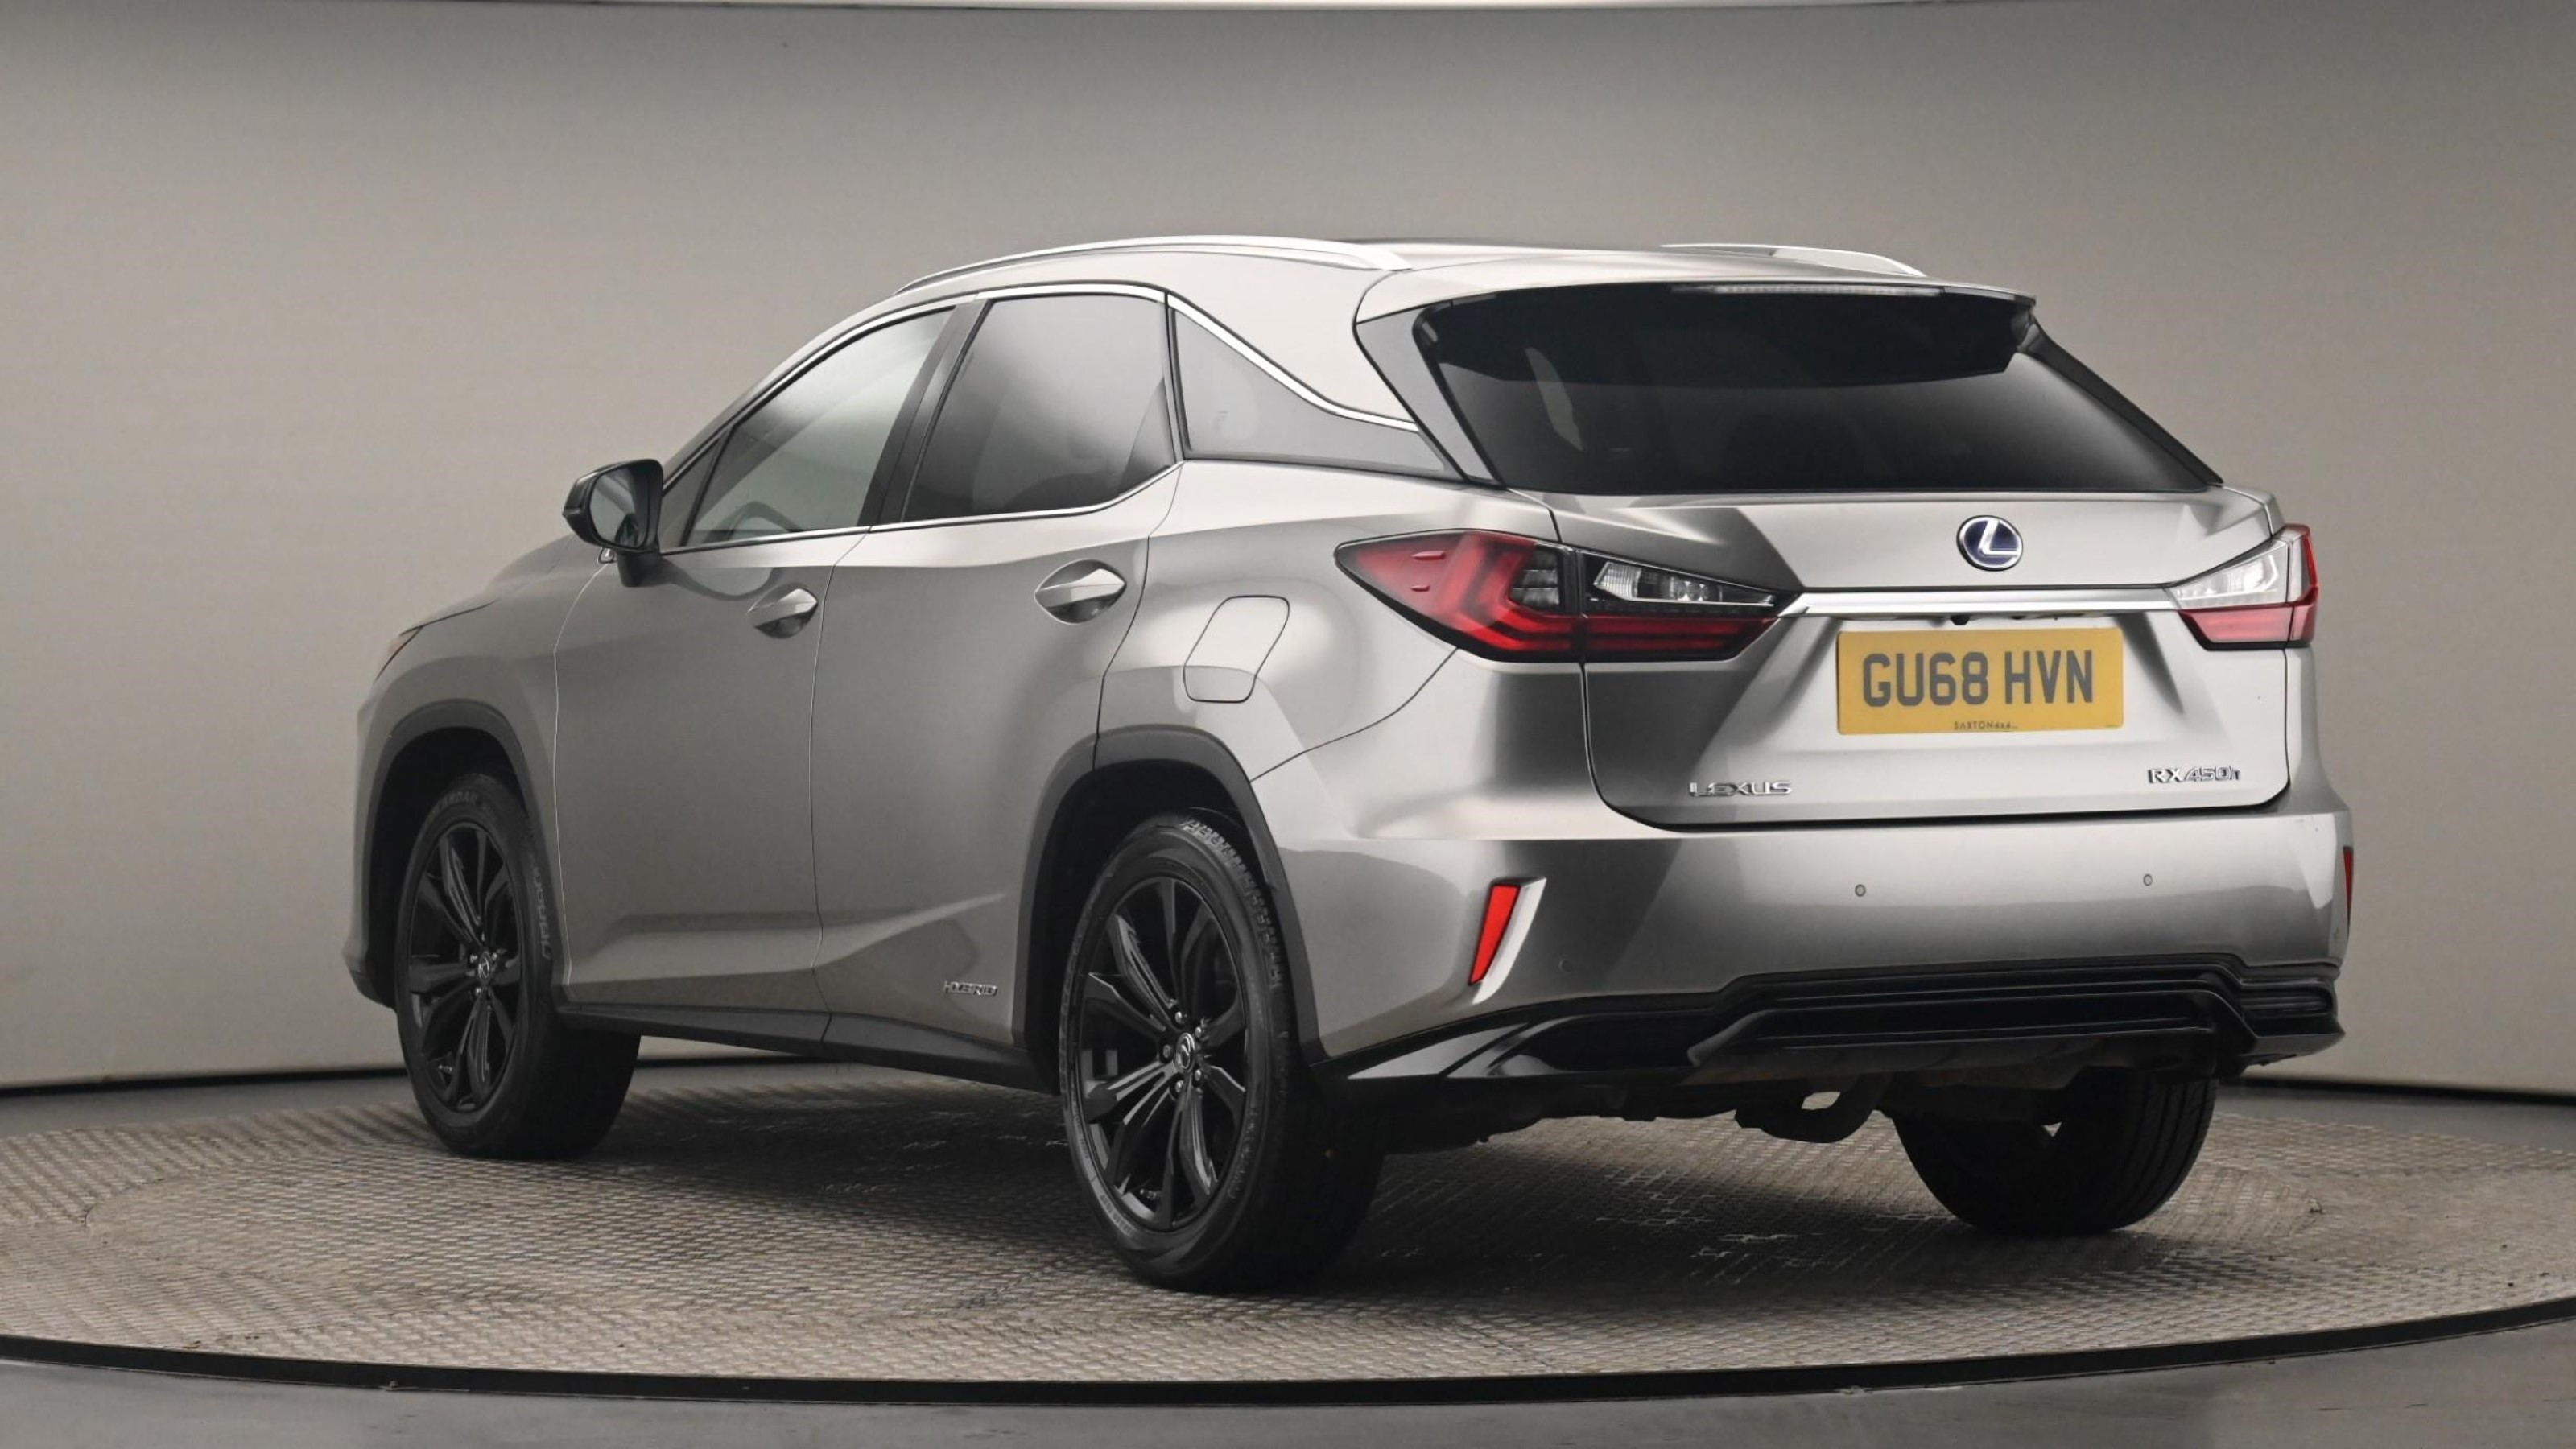 Used 2018 Lexus RX 450h 3.5 Sport 5dr CVT [Pan roof] SILVER at Saxton4x4